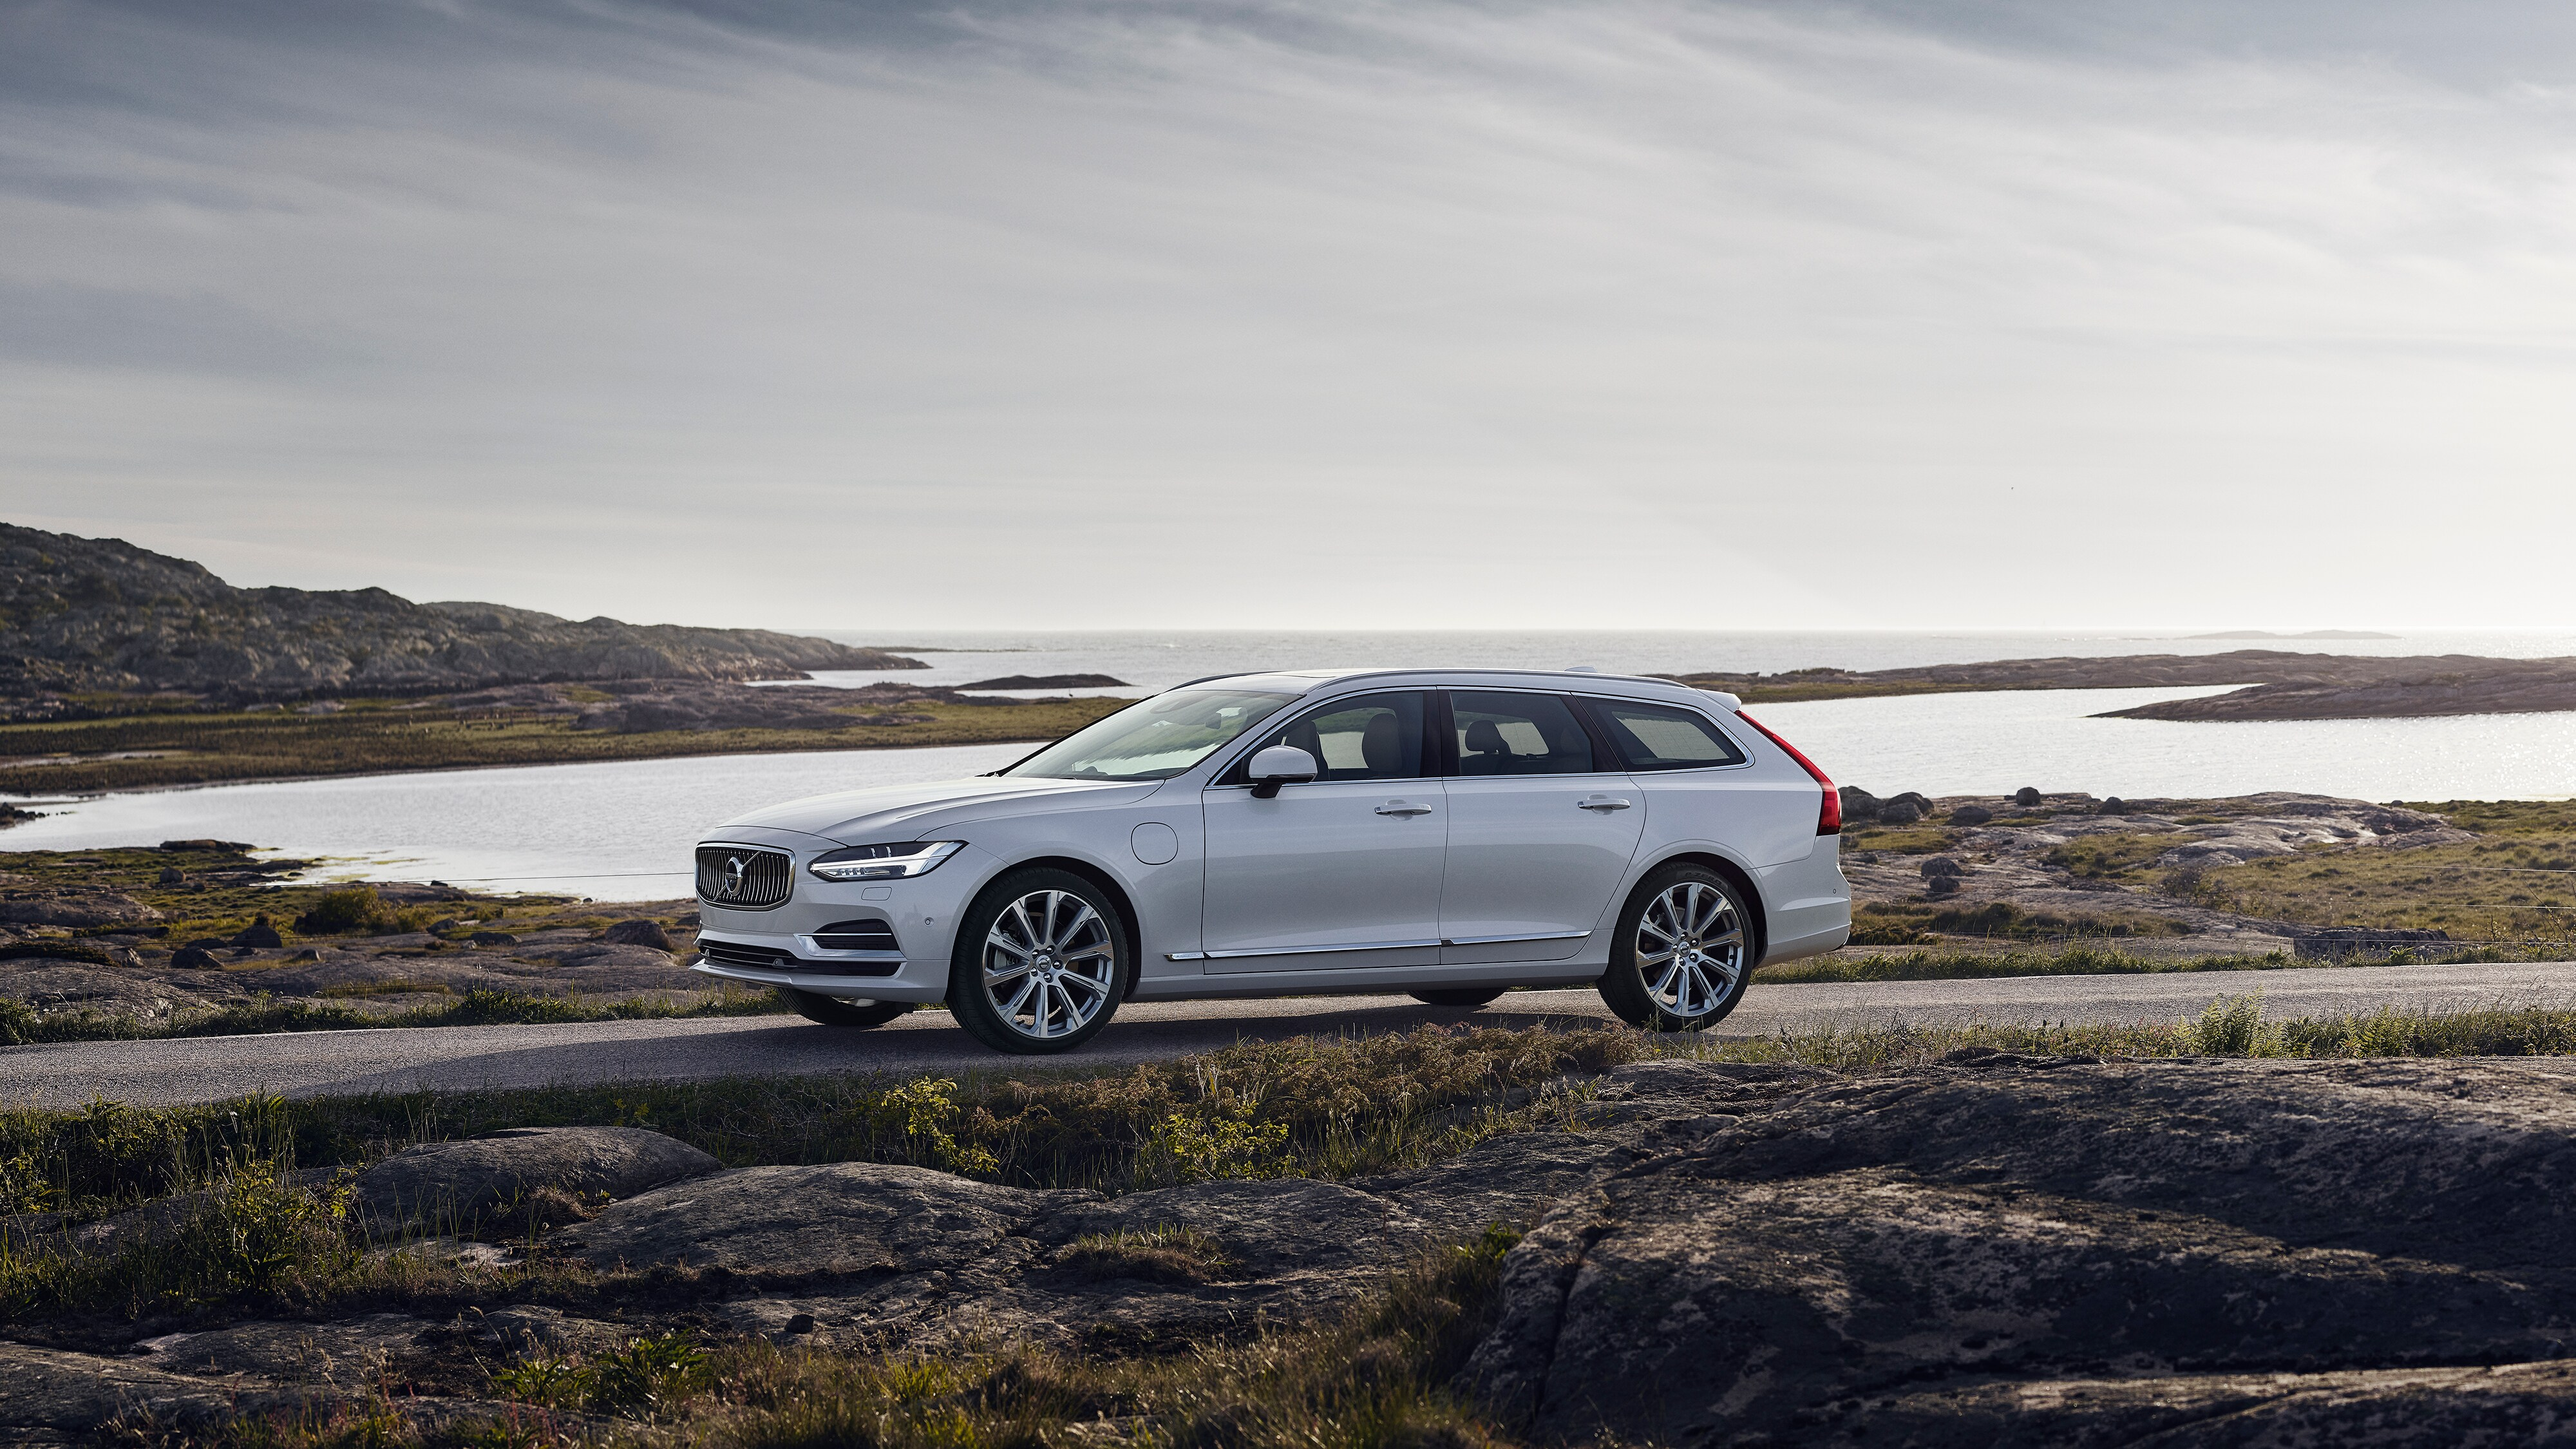 Side view of a white Volvo V90 on a road near the sea